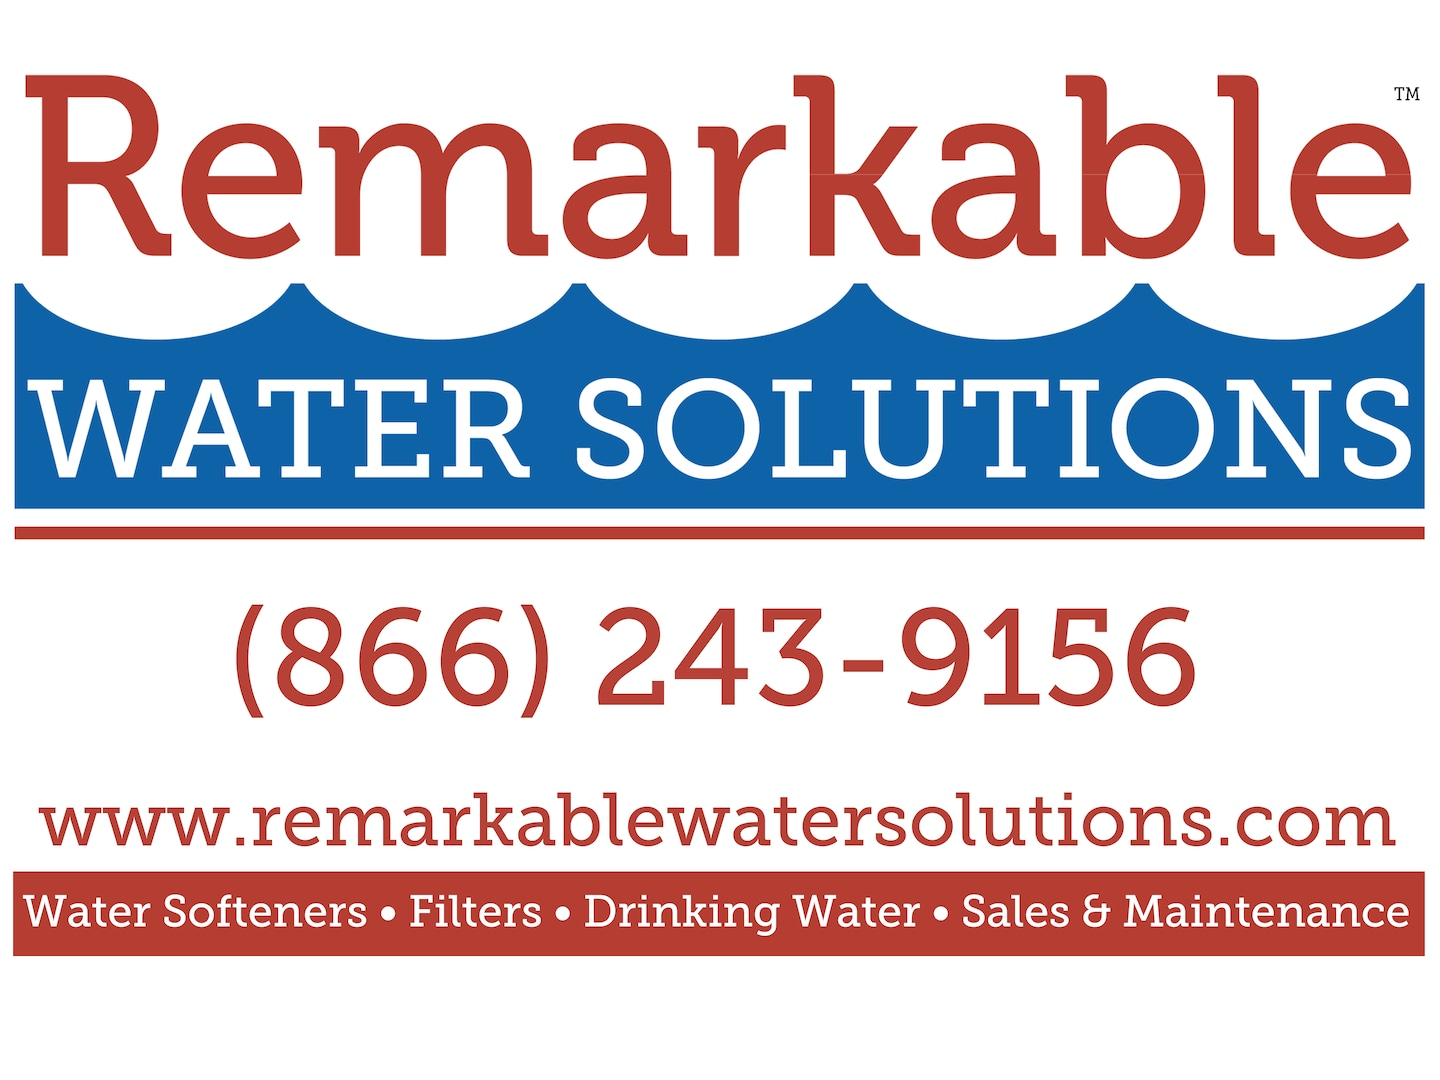 Remarkable Water Solutions